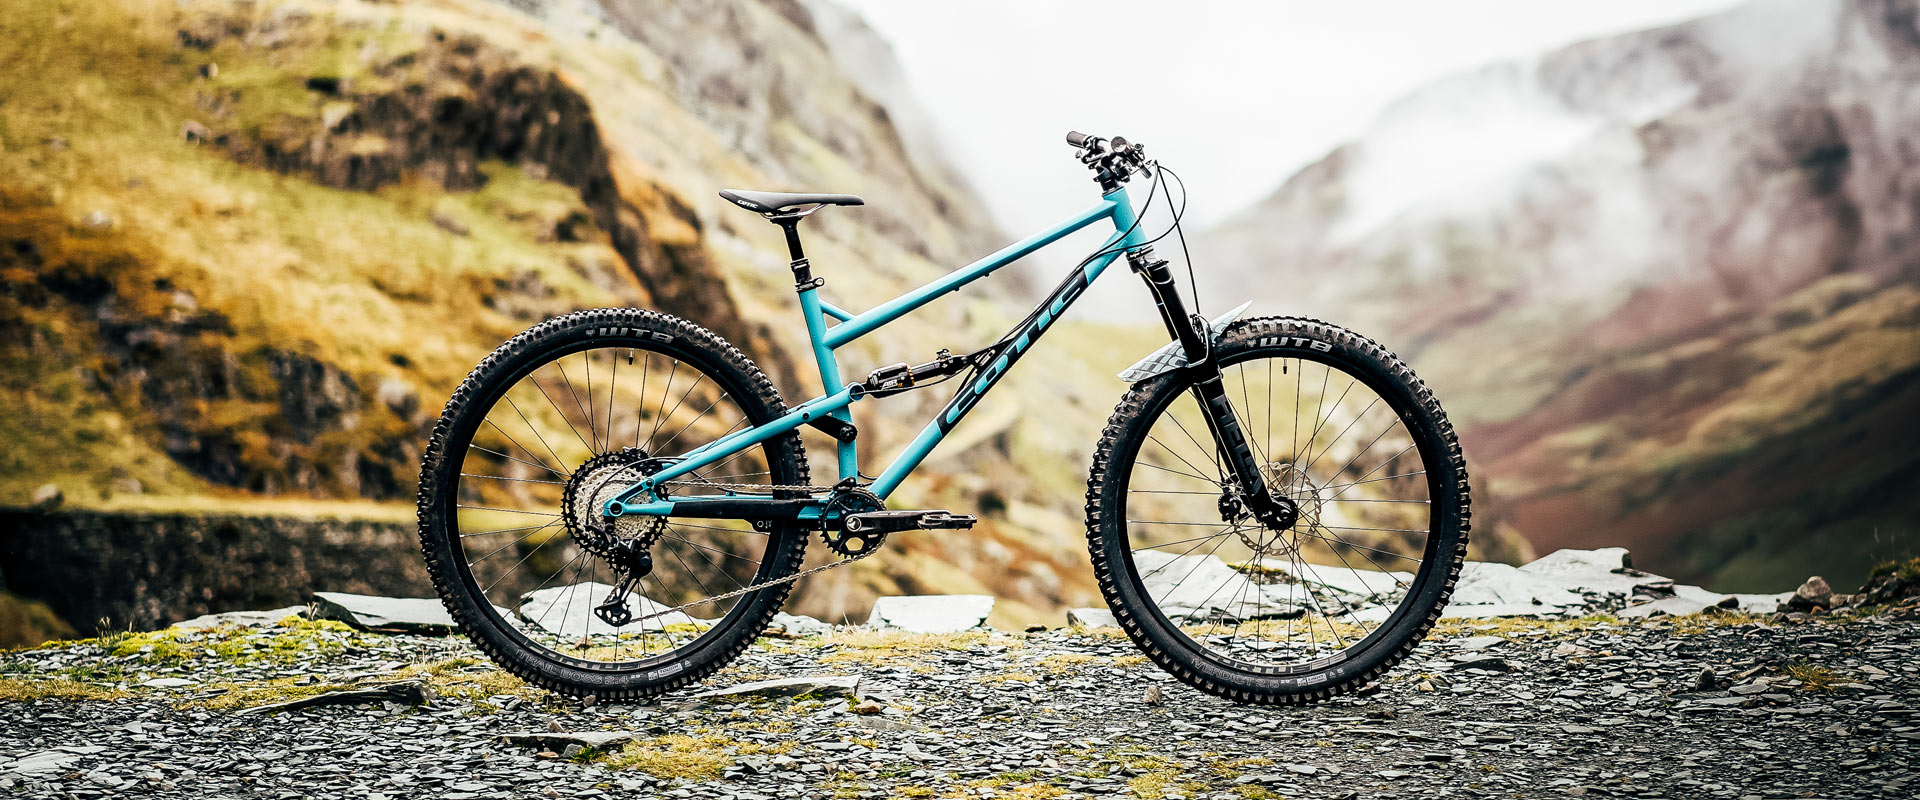 Cotic Jeht in Matte Teal, steel full suspension mountain bike, 29 mountain bike, 140mm travel, uk made, british made, made in britain, reynolds 853, long geometry, hand painted graphics